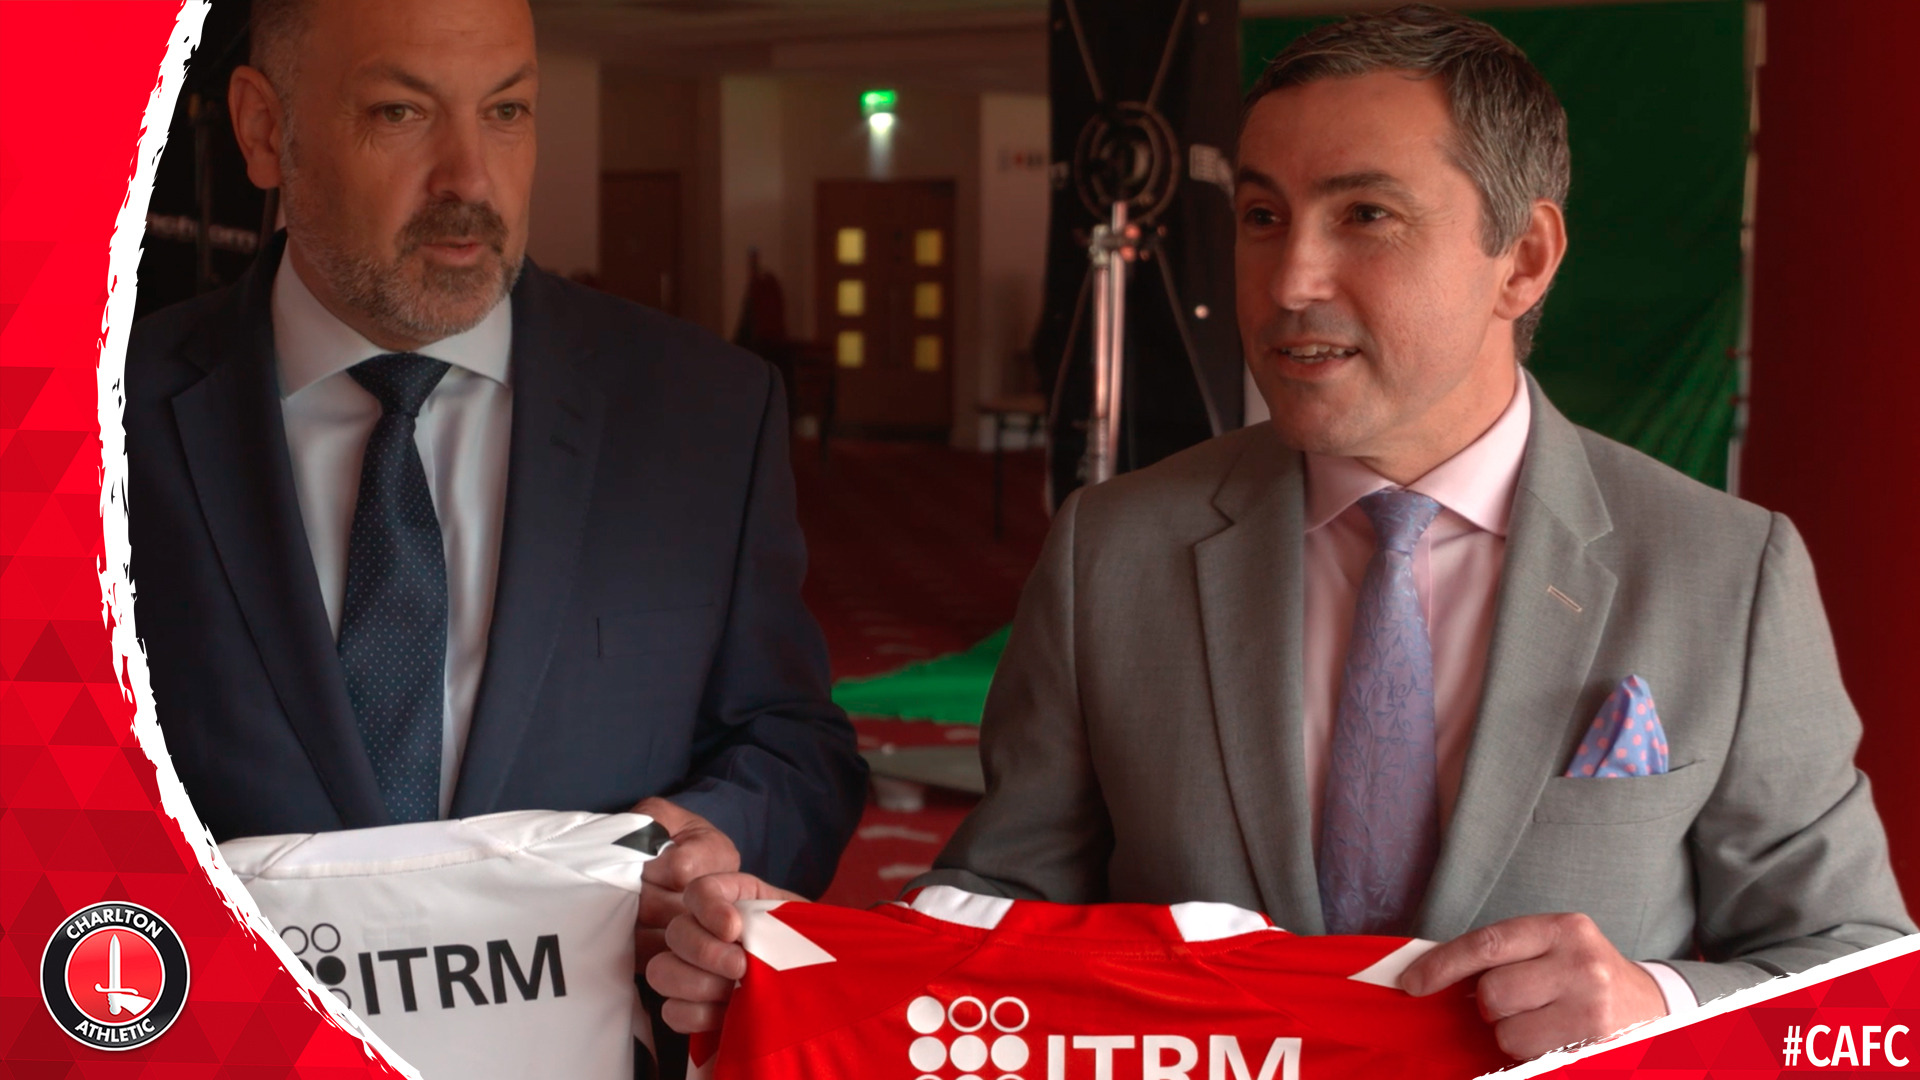 ITRM pleased with continuation of club partnership